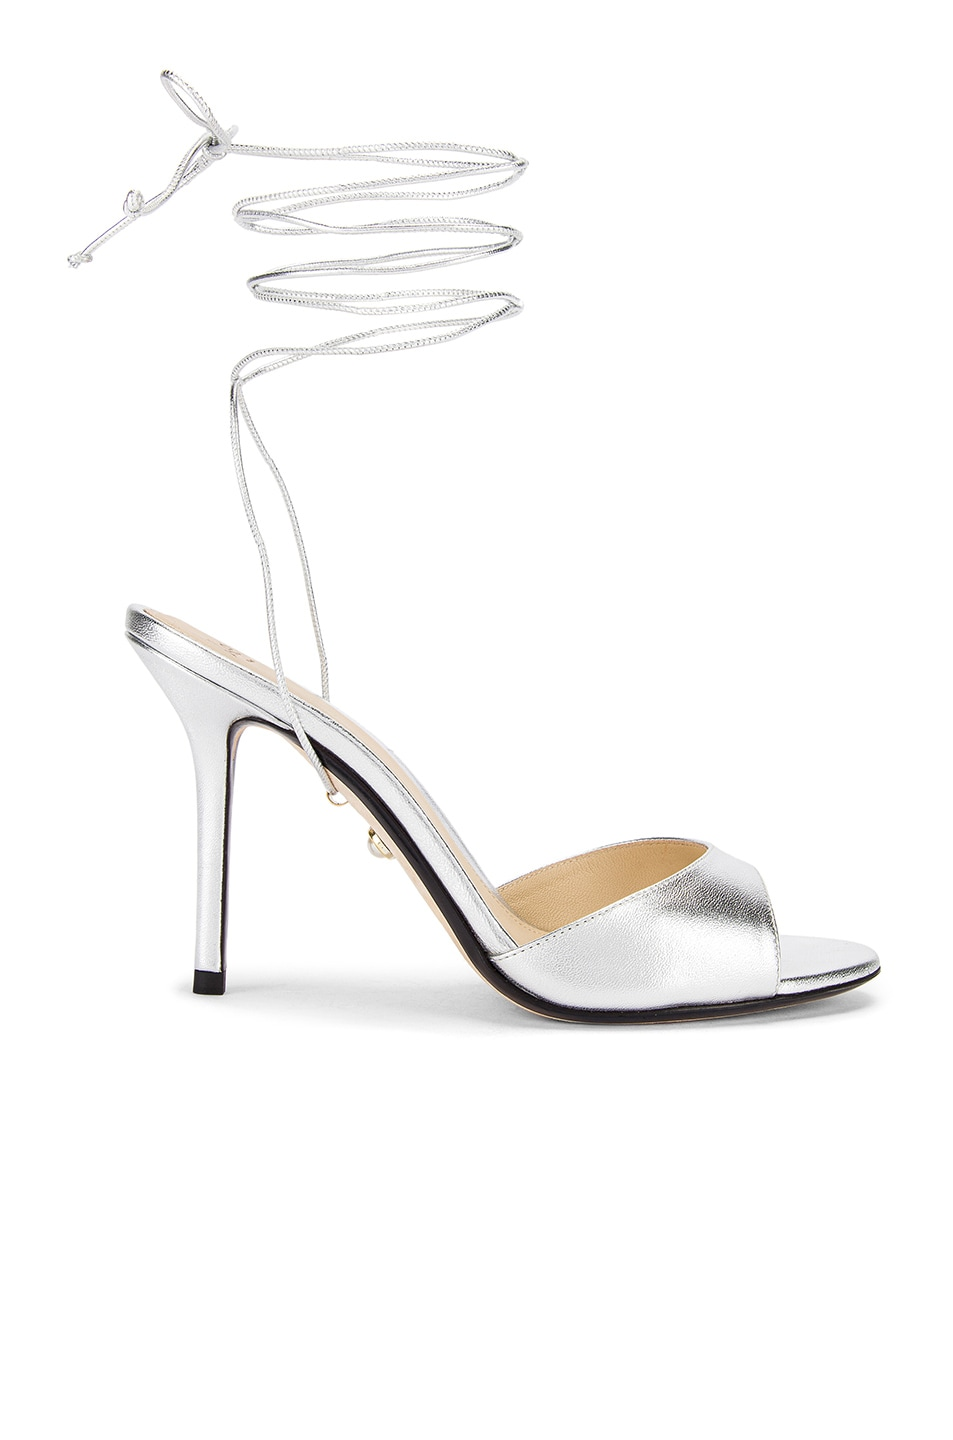 Image 1 of ALEVI Milano Lucy Sandal in Shine Silver